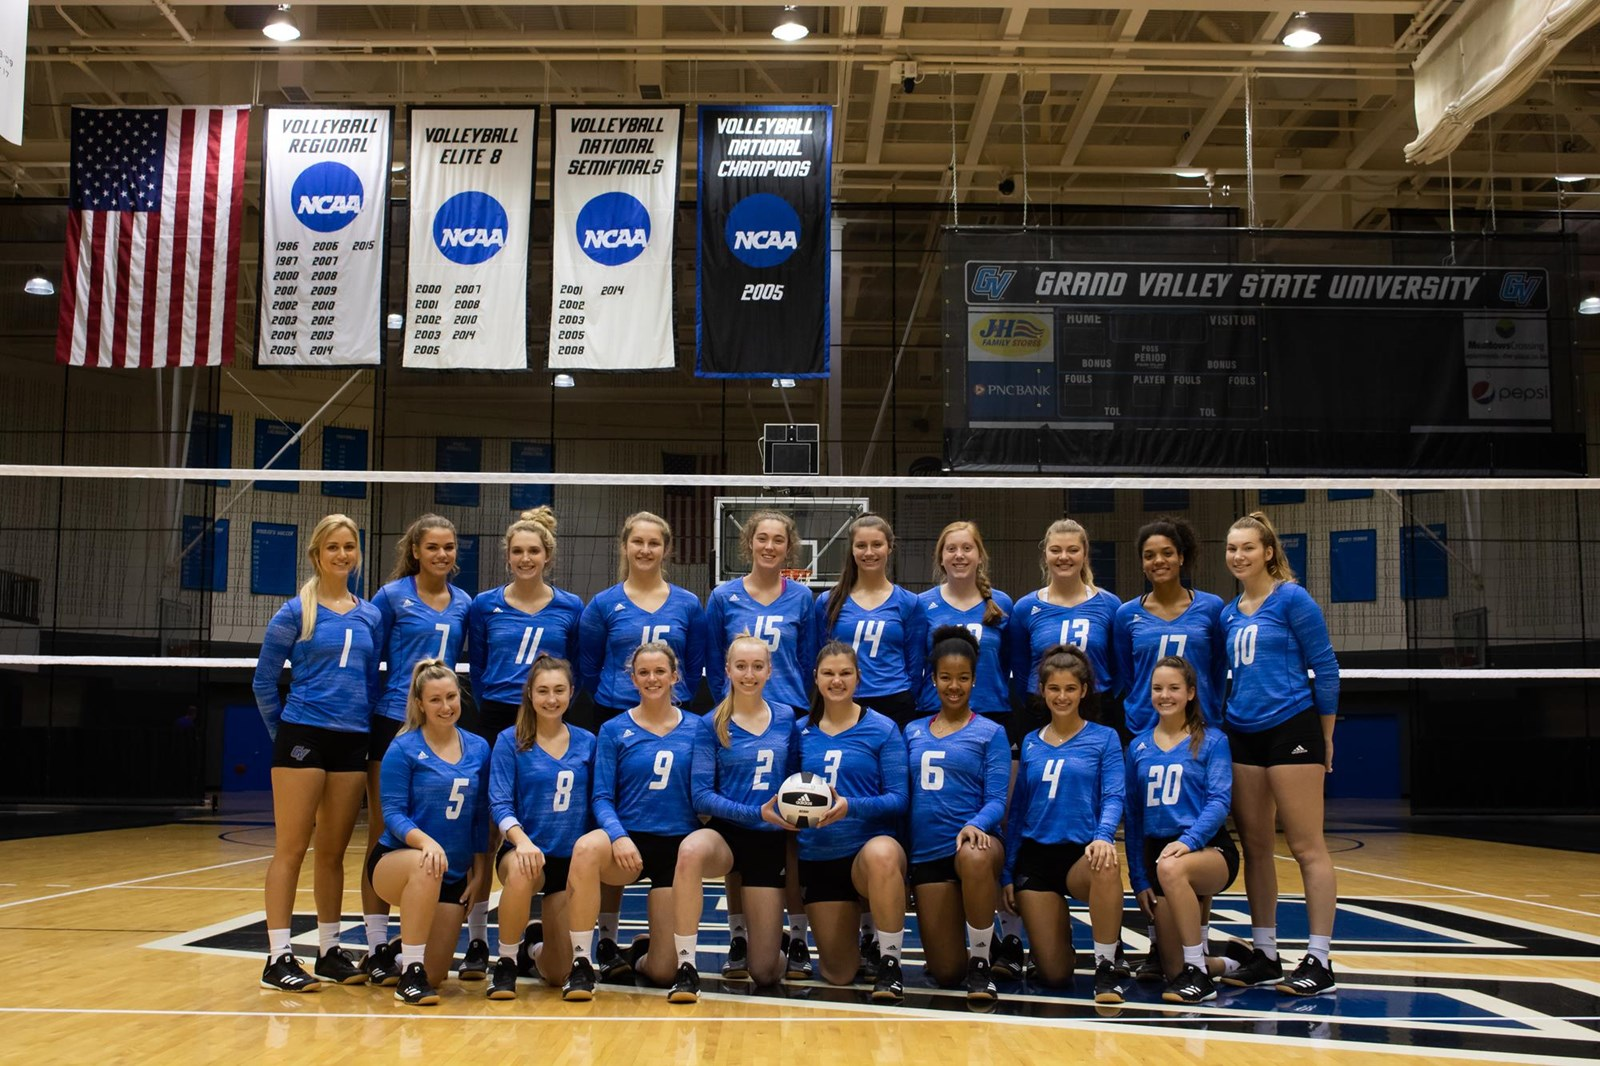 2019 Women S Volleyball Roster Grand Valley State University Athletics